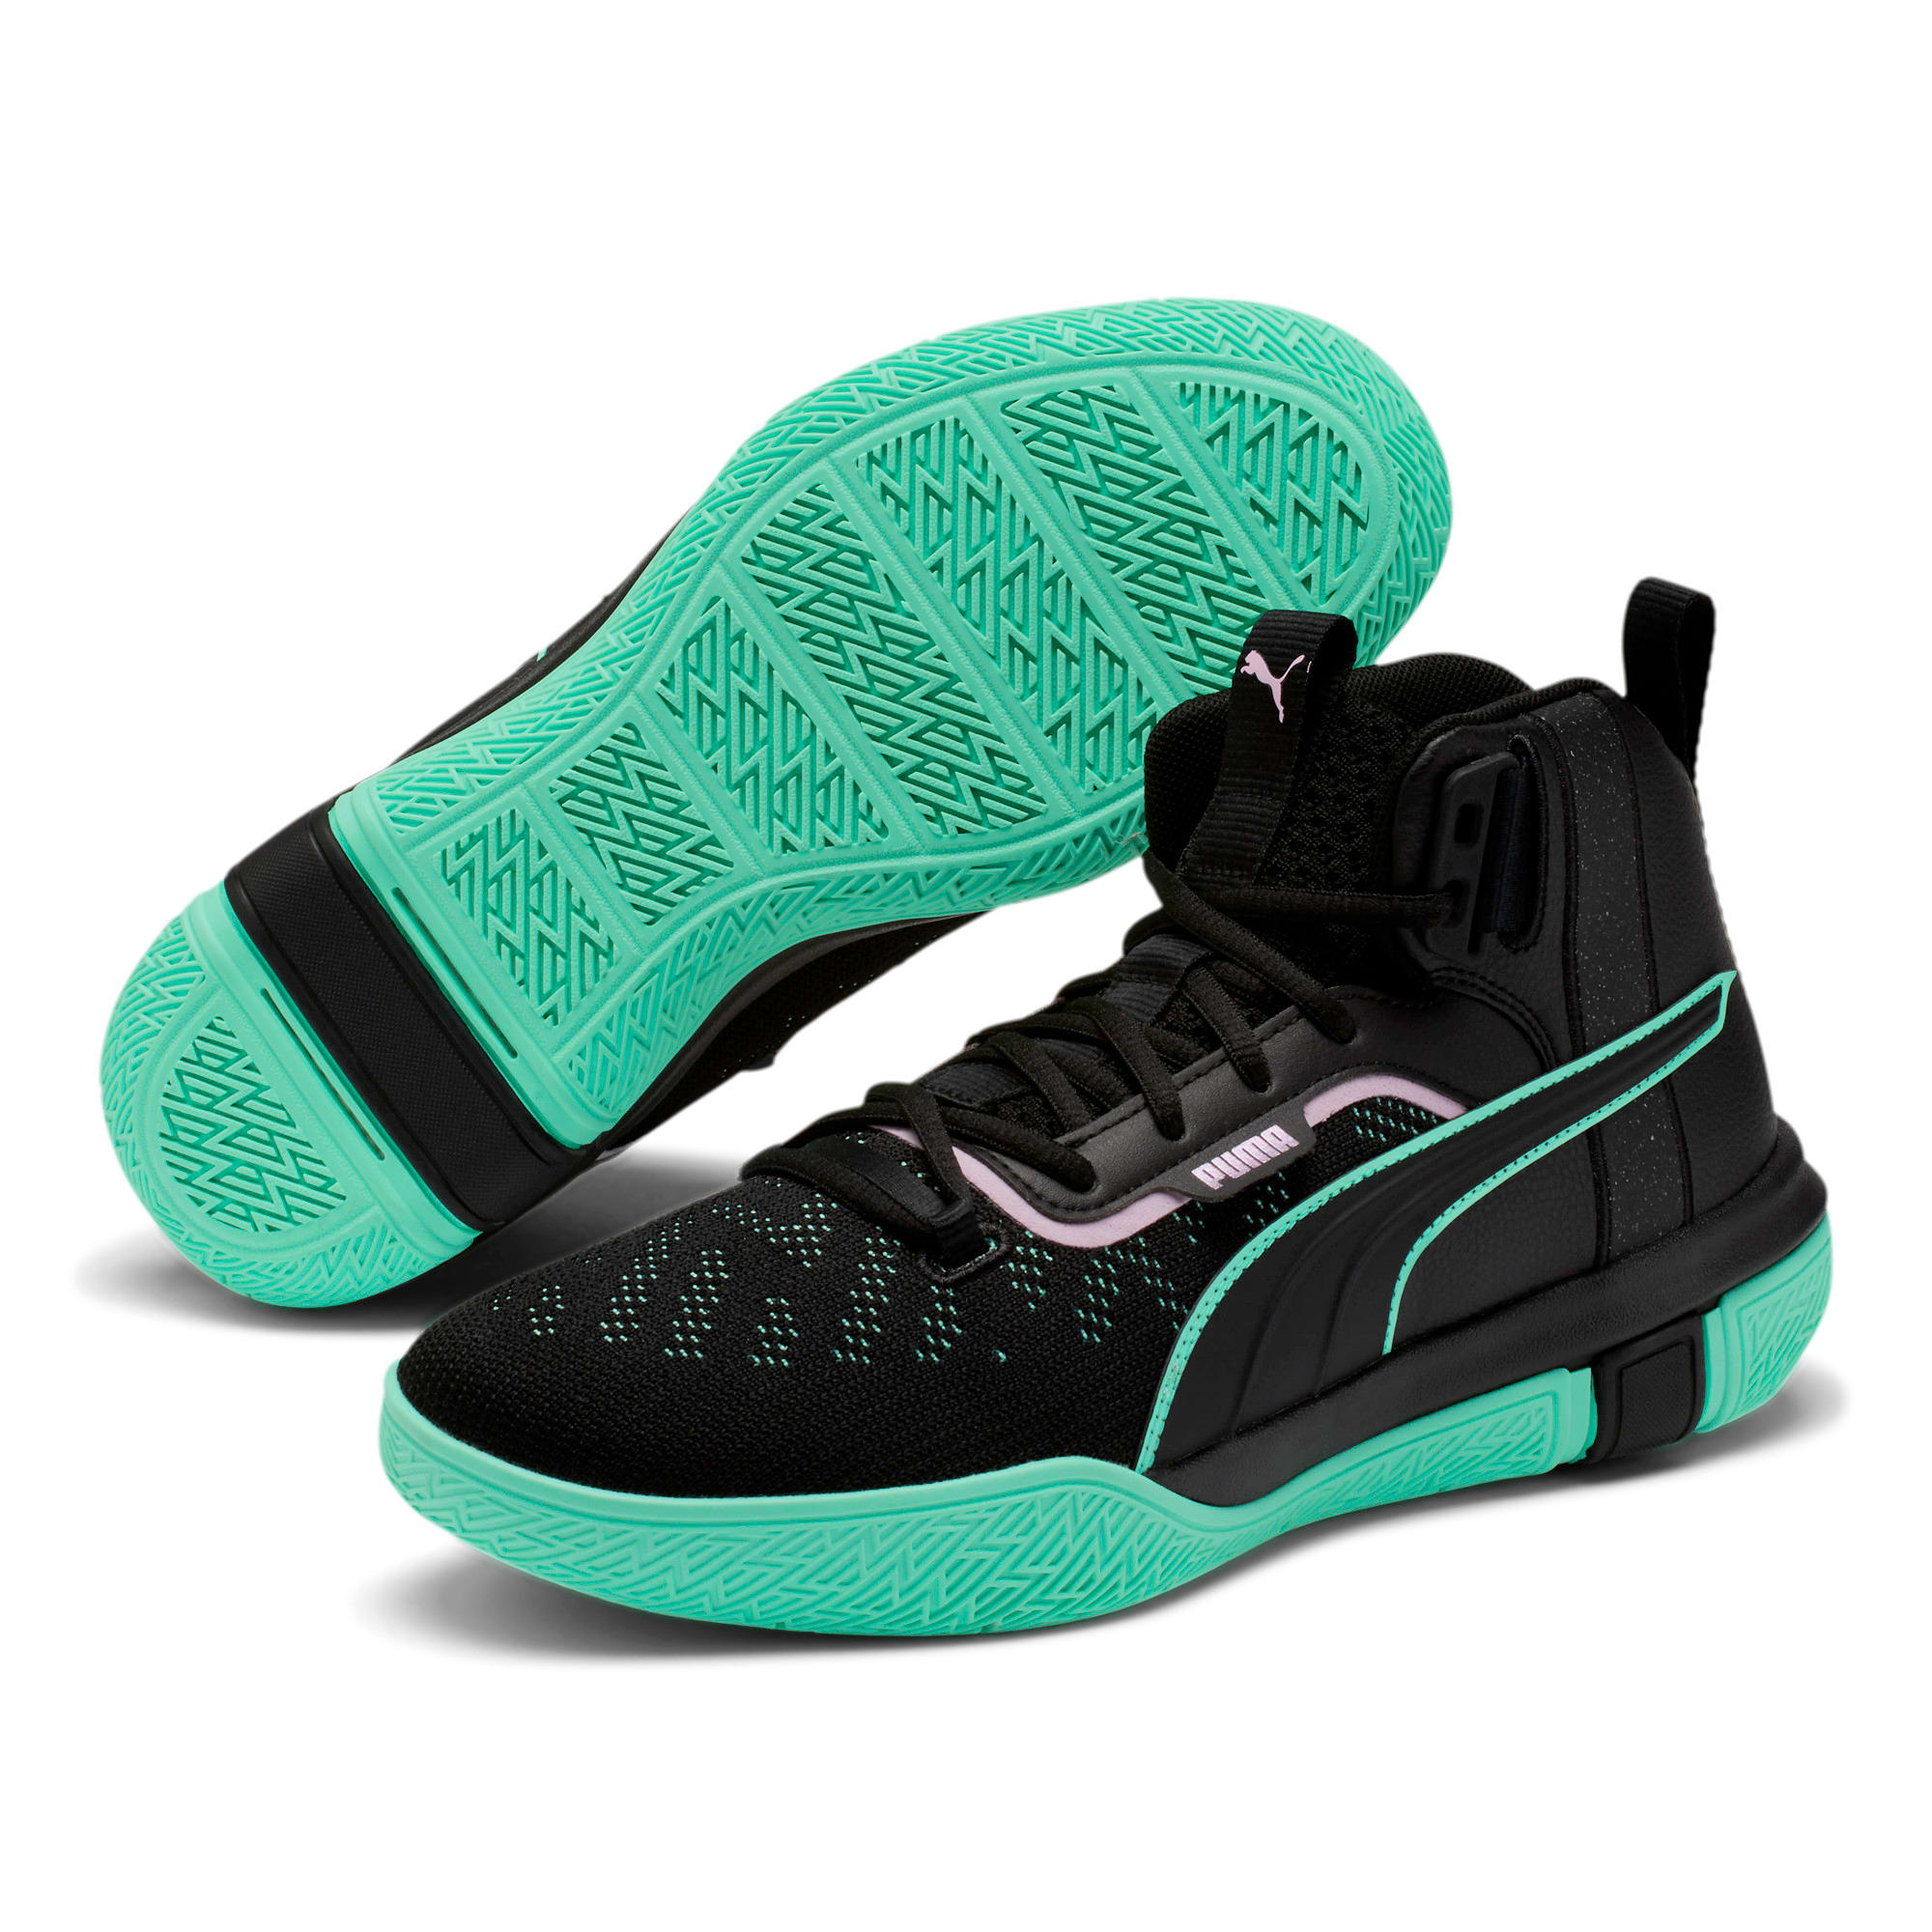 Thumbnail 2 of Legacy Dark Mode Basketball Shoes, Puma Black-Orchid Bloom, medium